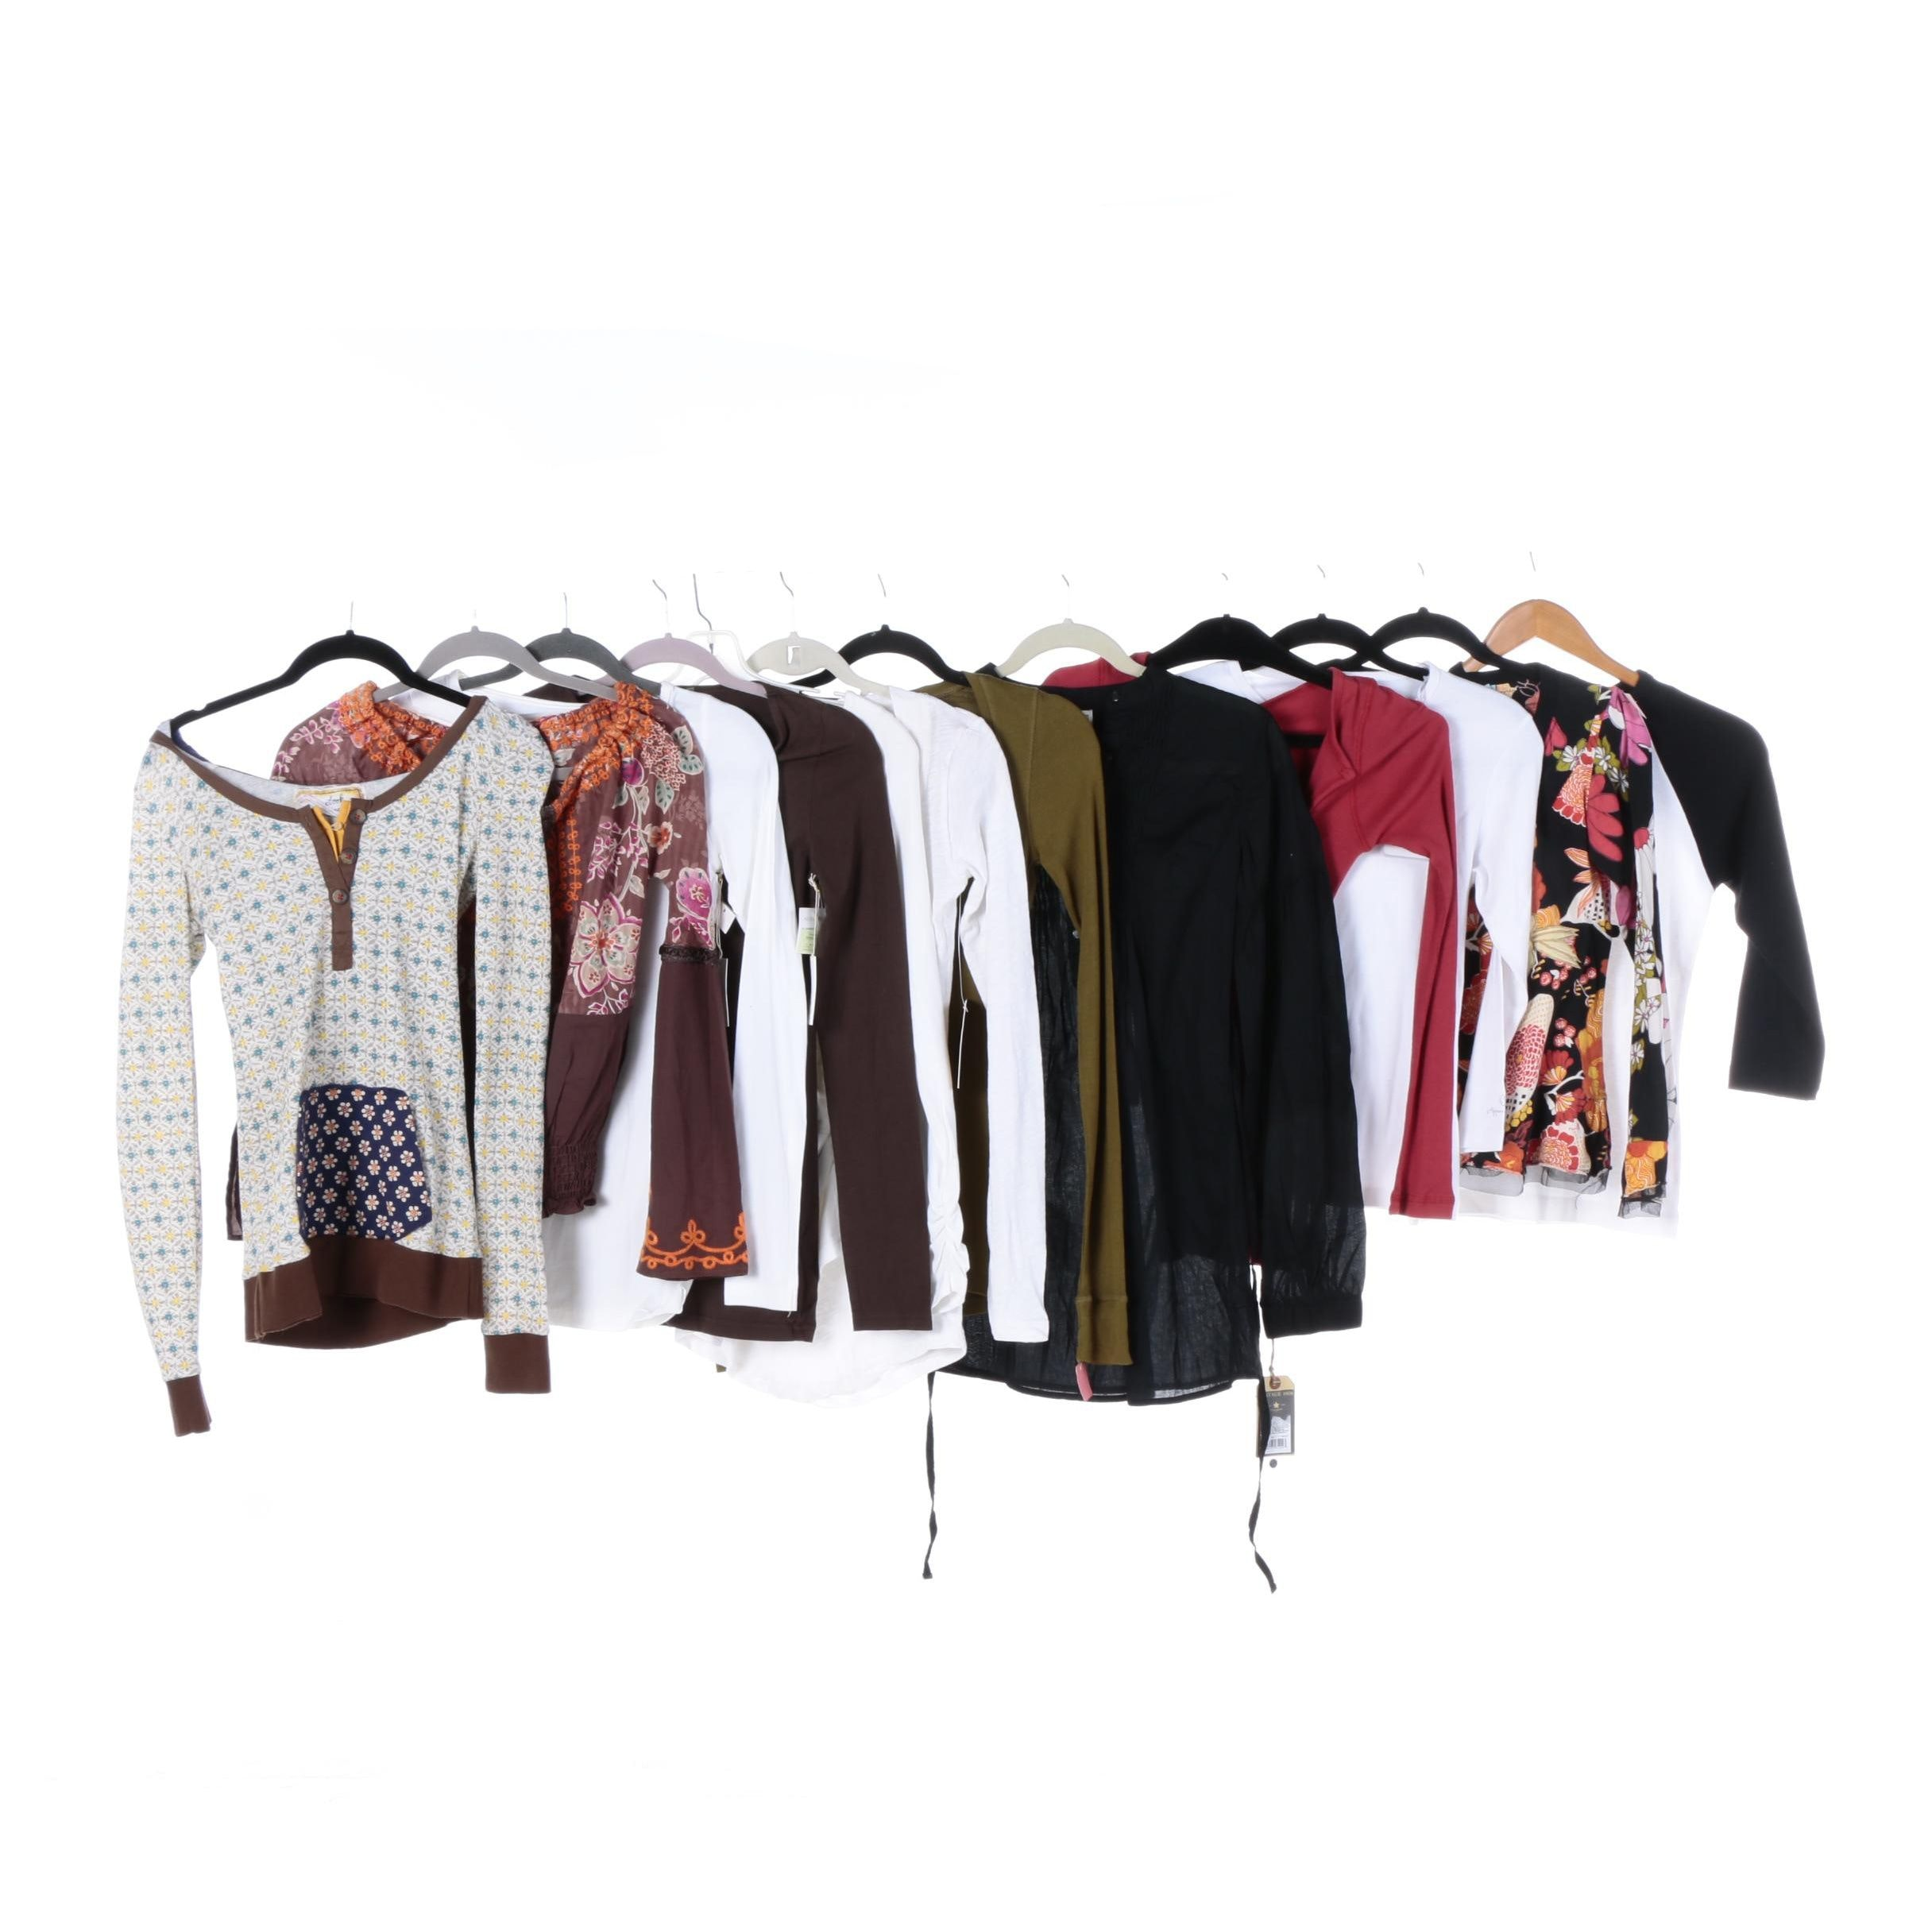 Women's Long Sleeved Shirts and Blouses Including Hologen and Kenneth Cole